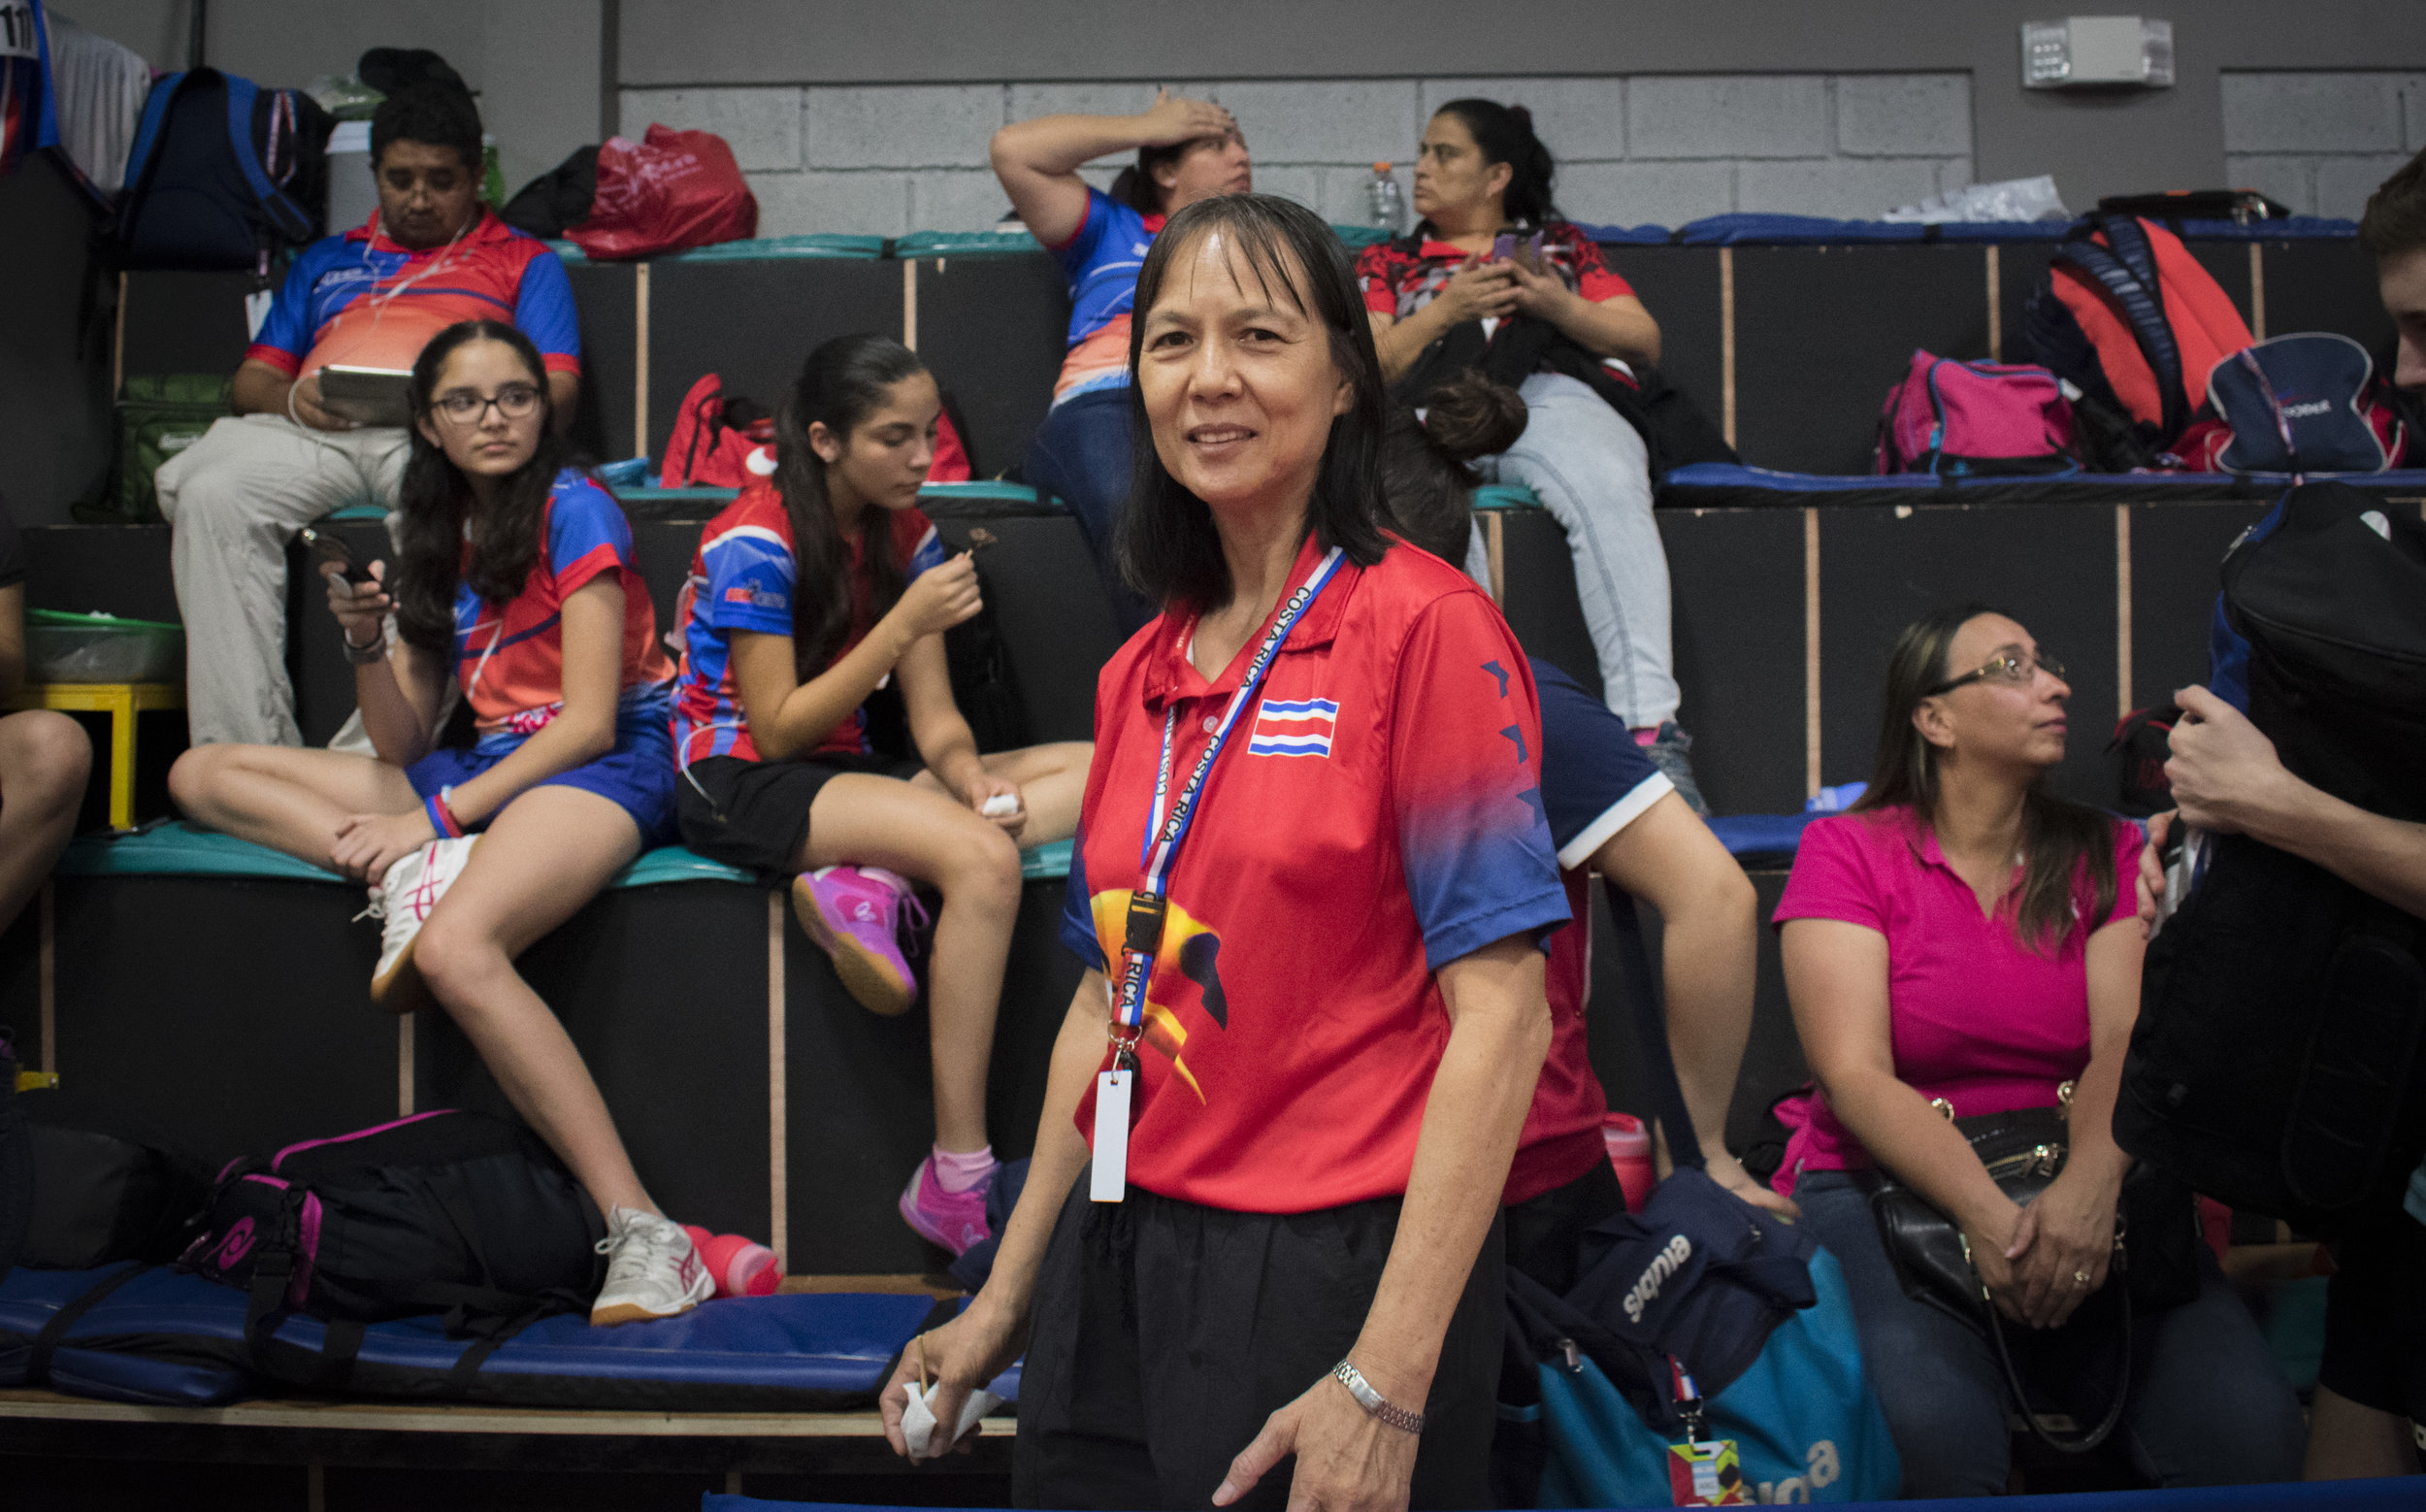 8.Sonia (Muty) Hernández Lo works at her clothing store by day, but pursues her passion of coaching ping pong by night. Ping pong has a long history associated with the Chinese community.JPG